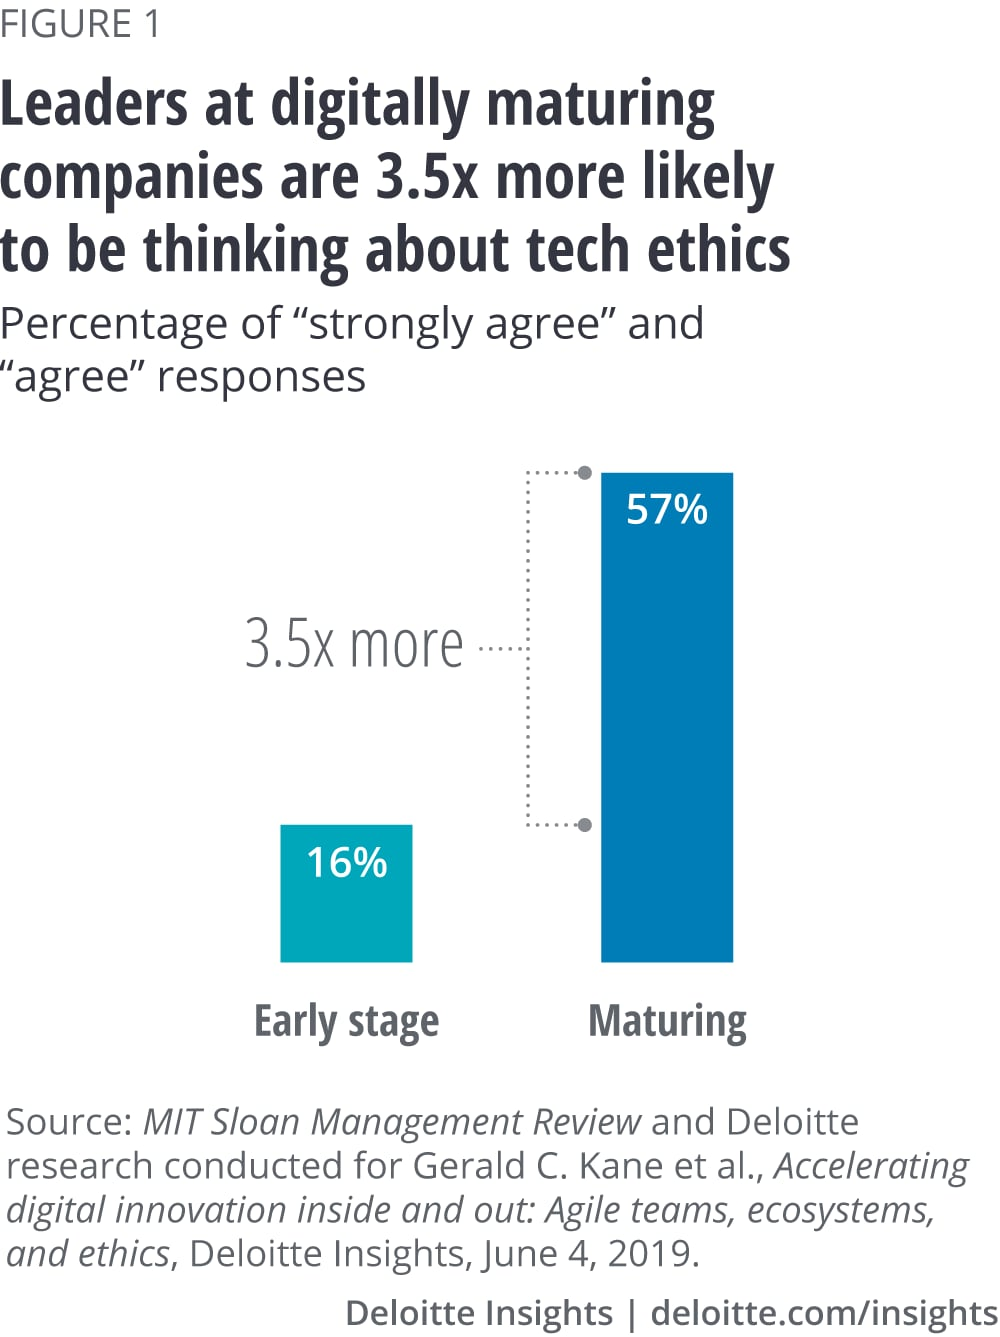 Leaders at digitally maturing companies are 3.5x more likely to be thinking about tech ethics